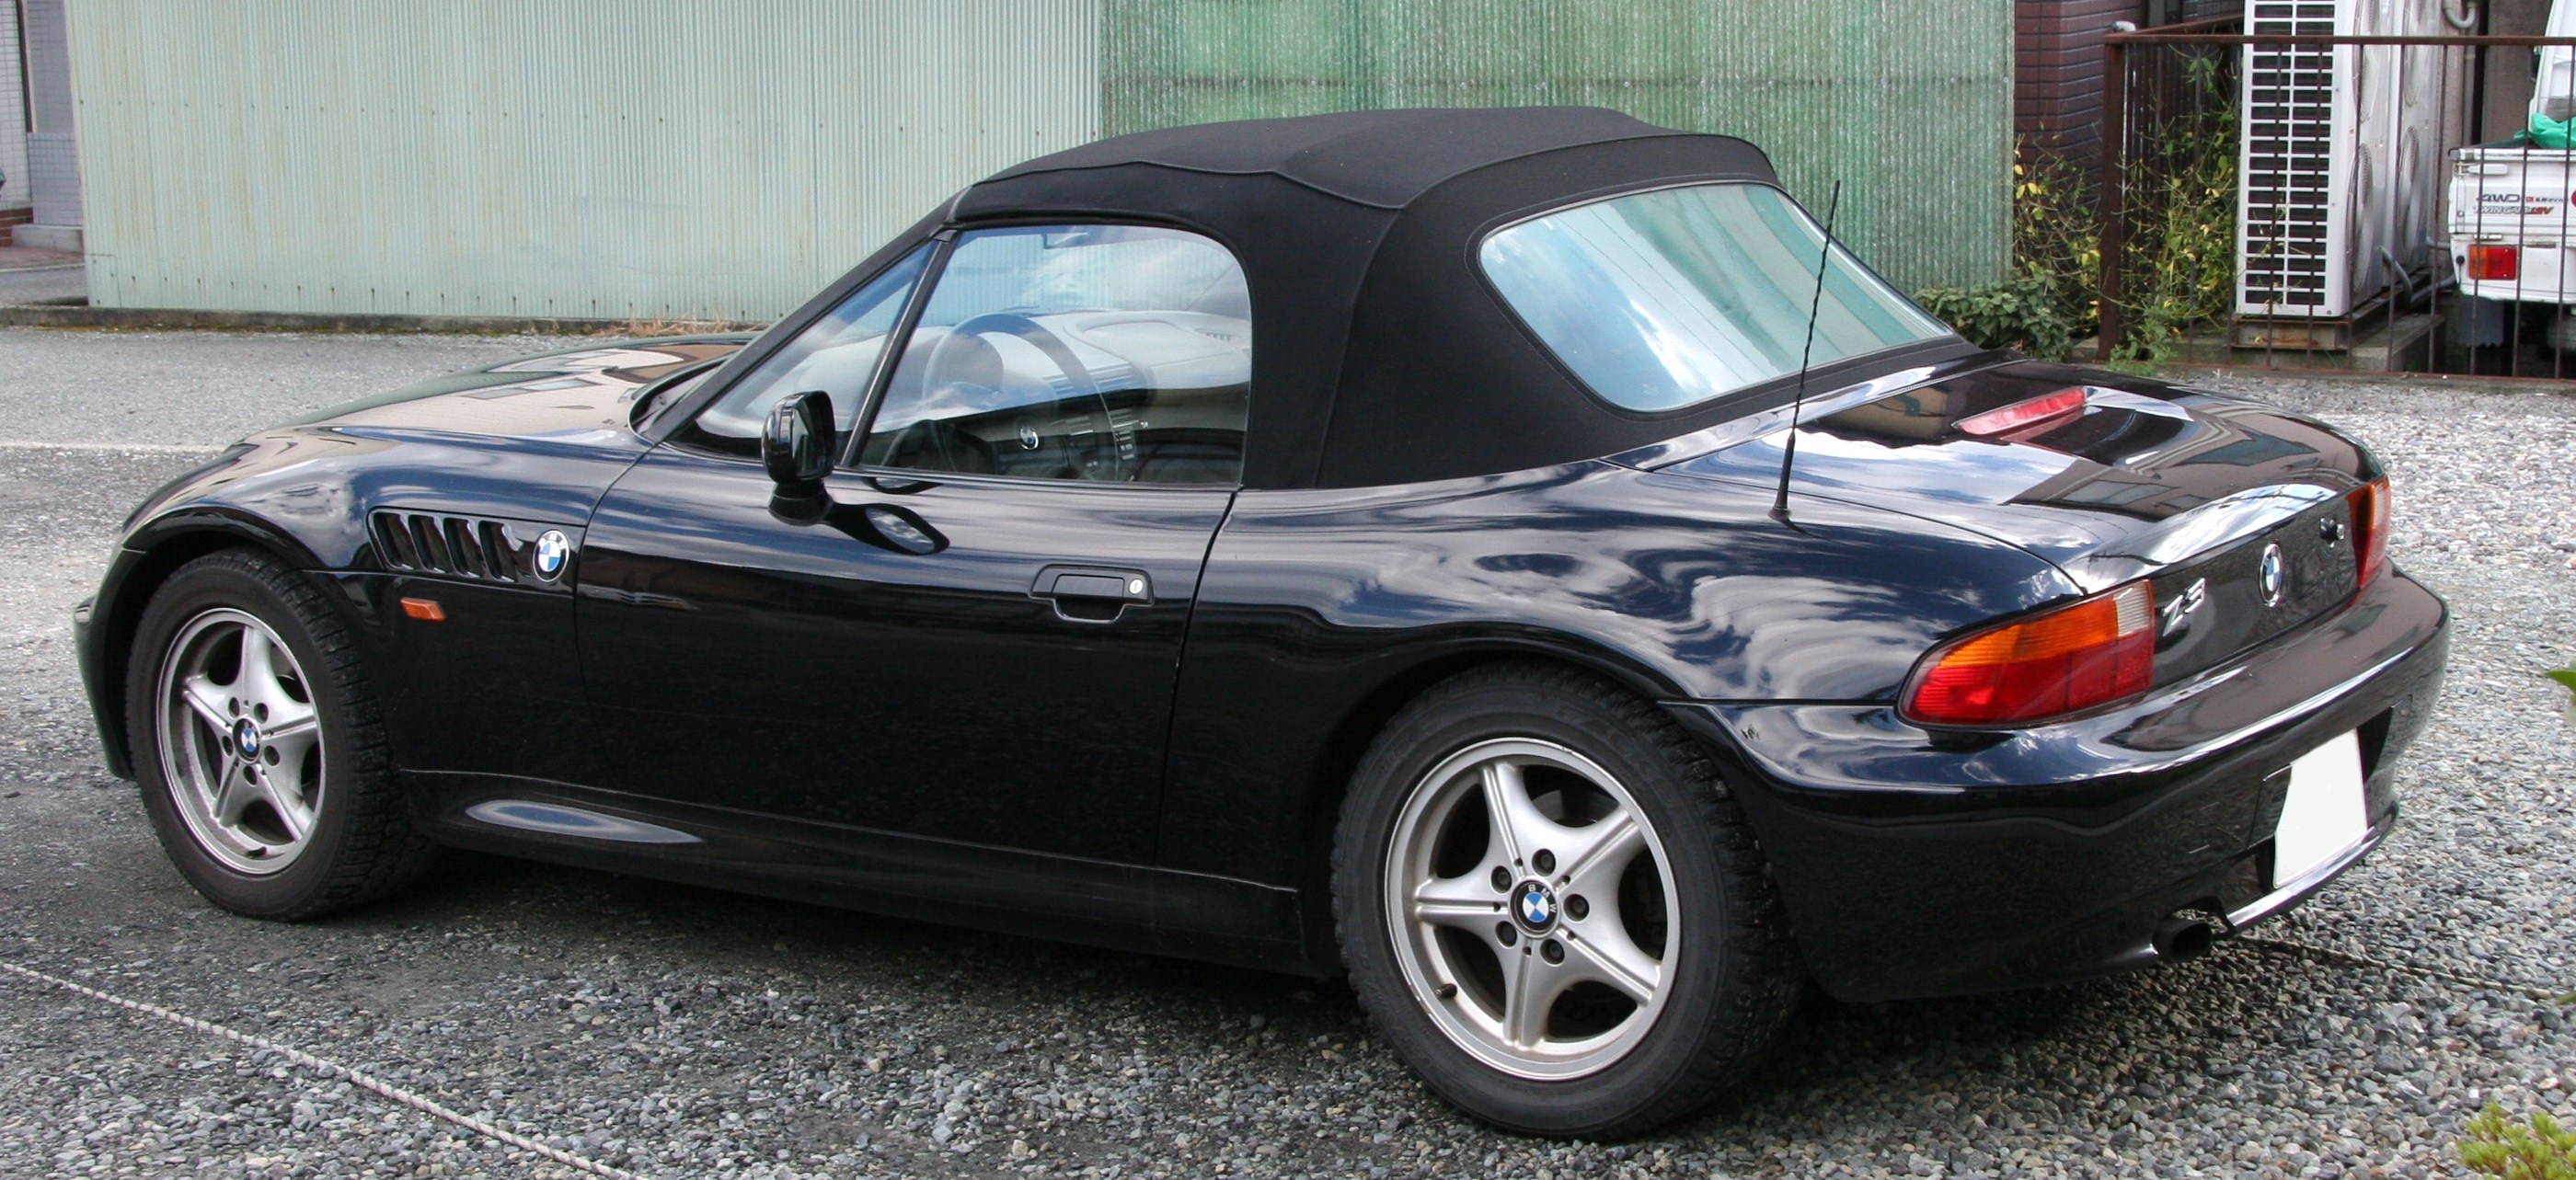 File 1996 1998 Bmw Z3 Roadster Rear Jpg Wikimedia Commons